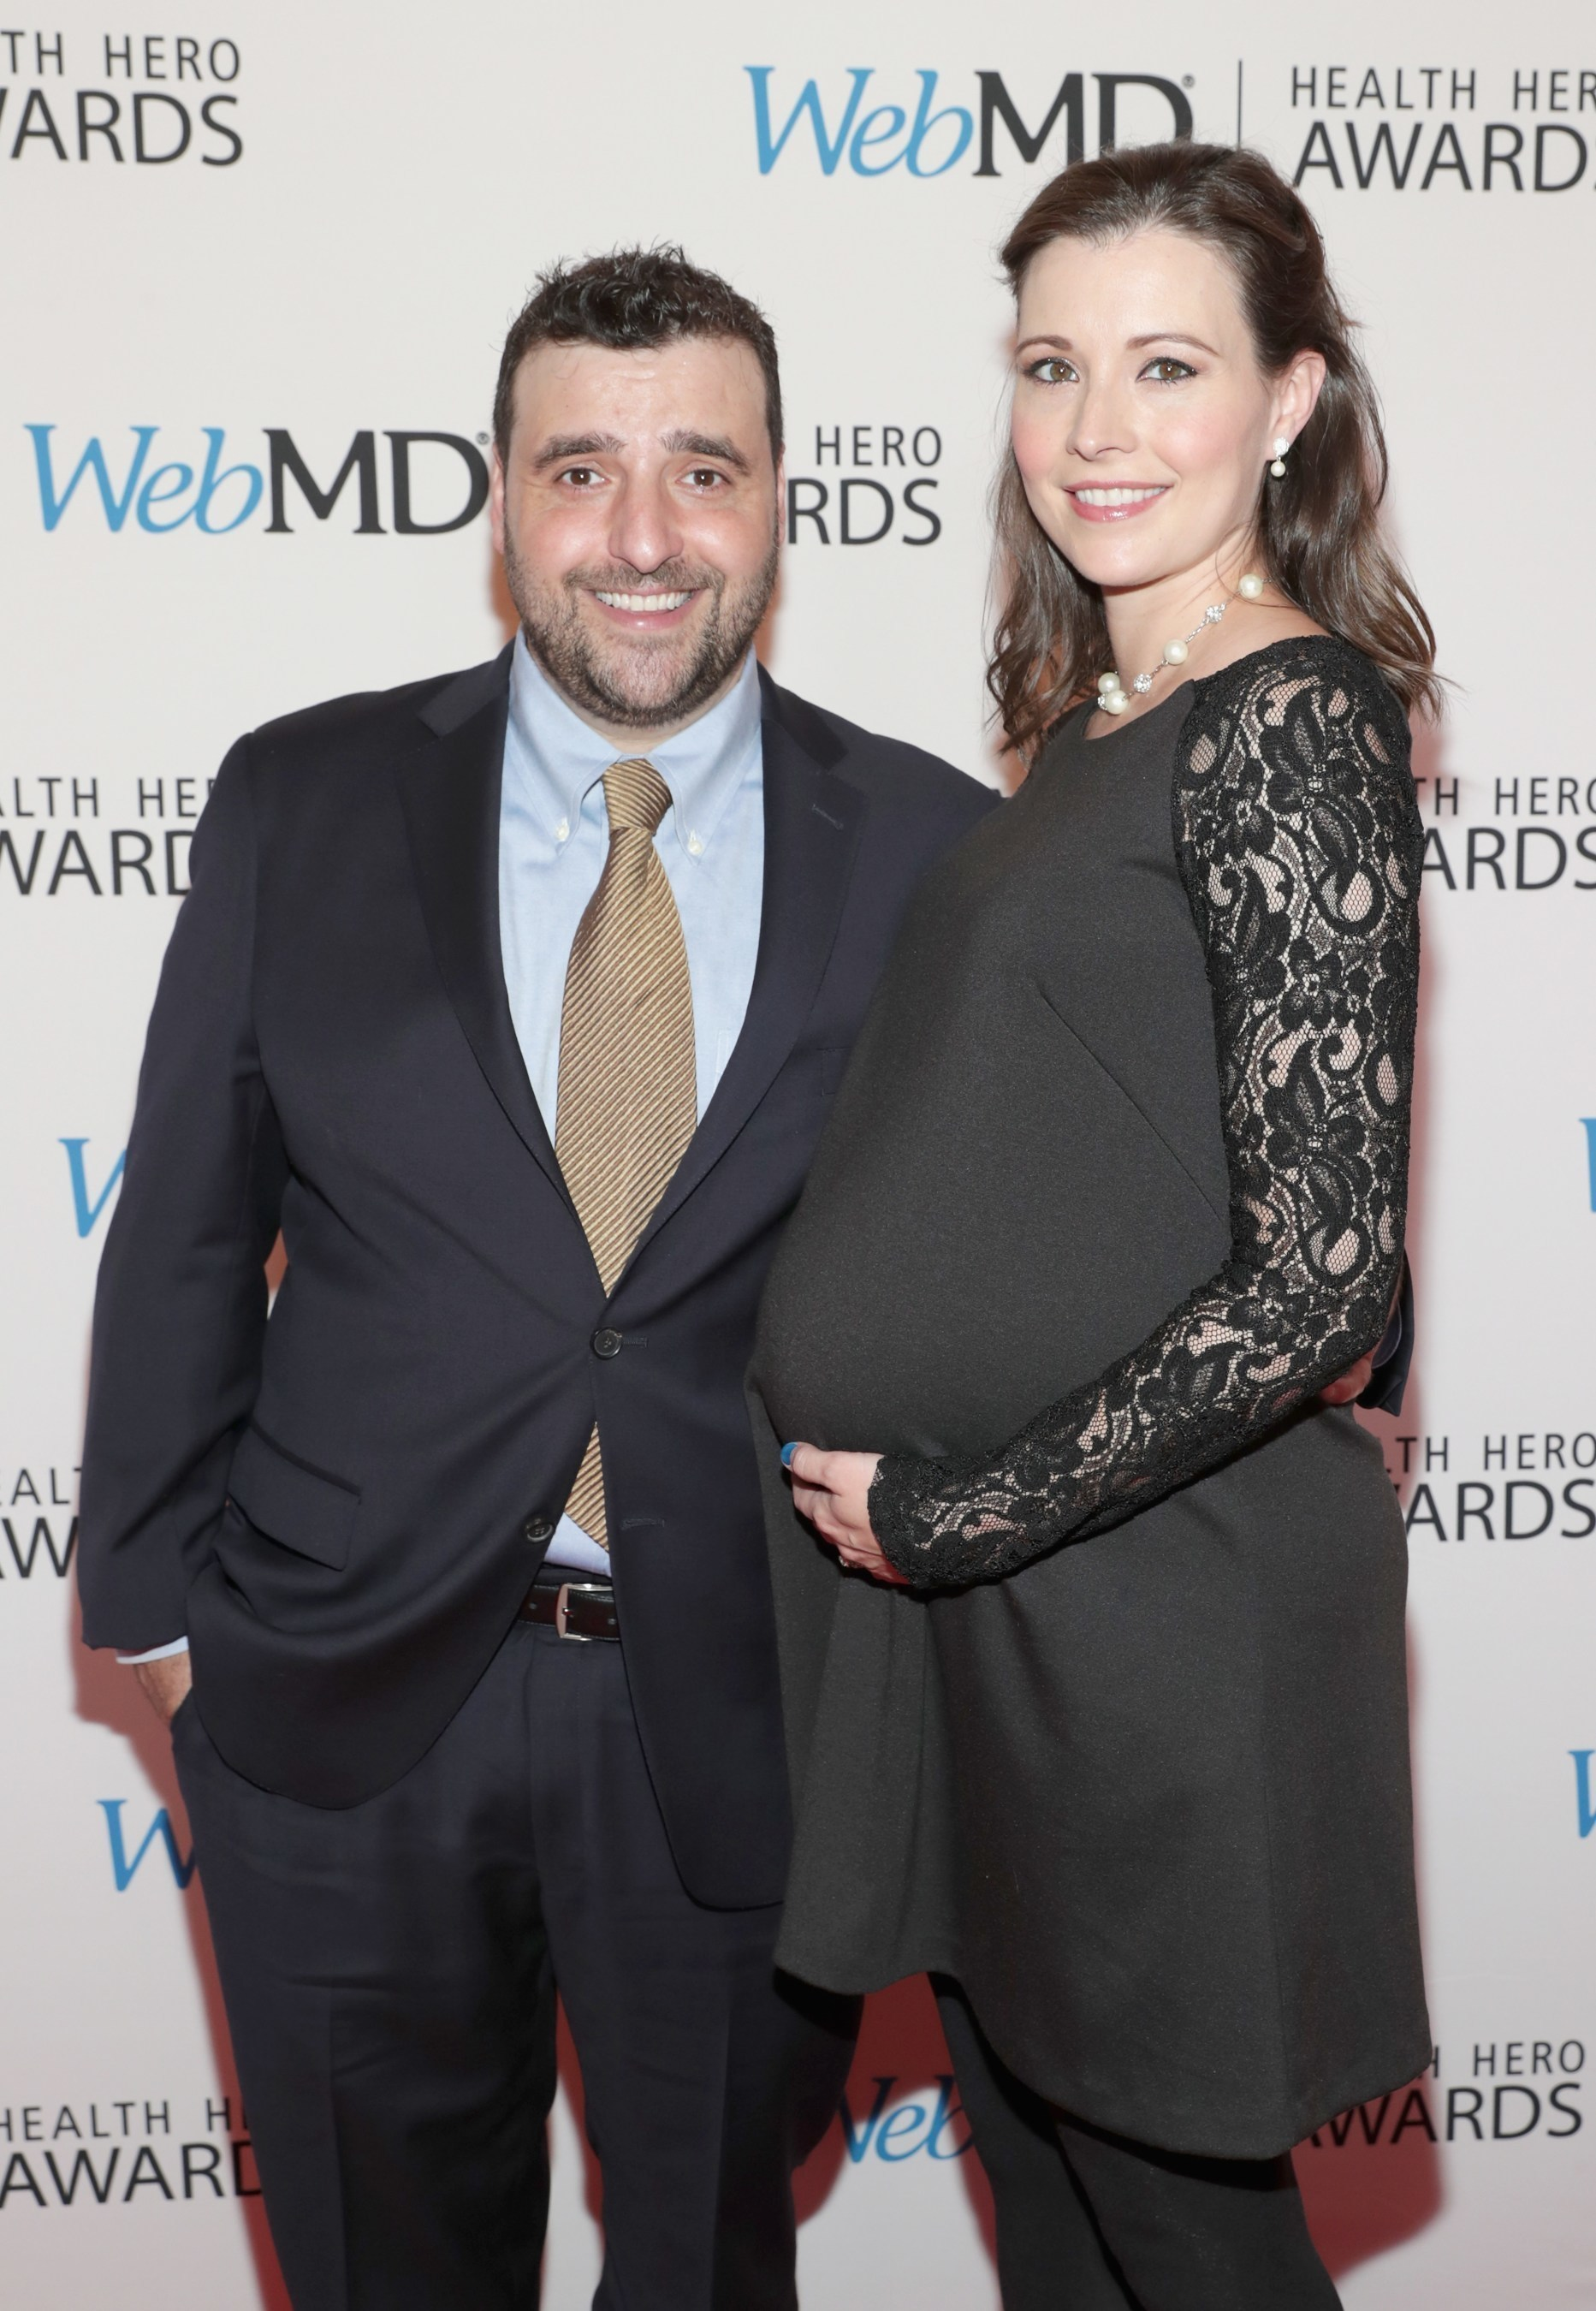 David Krumholtz (L) and wife Vanessa Britting attend WebMD Health Heroes Awards on November 3, 2016 in New York City.